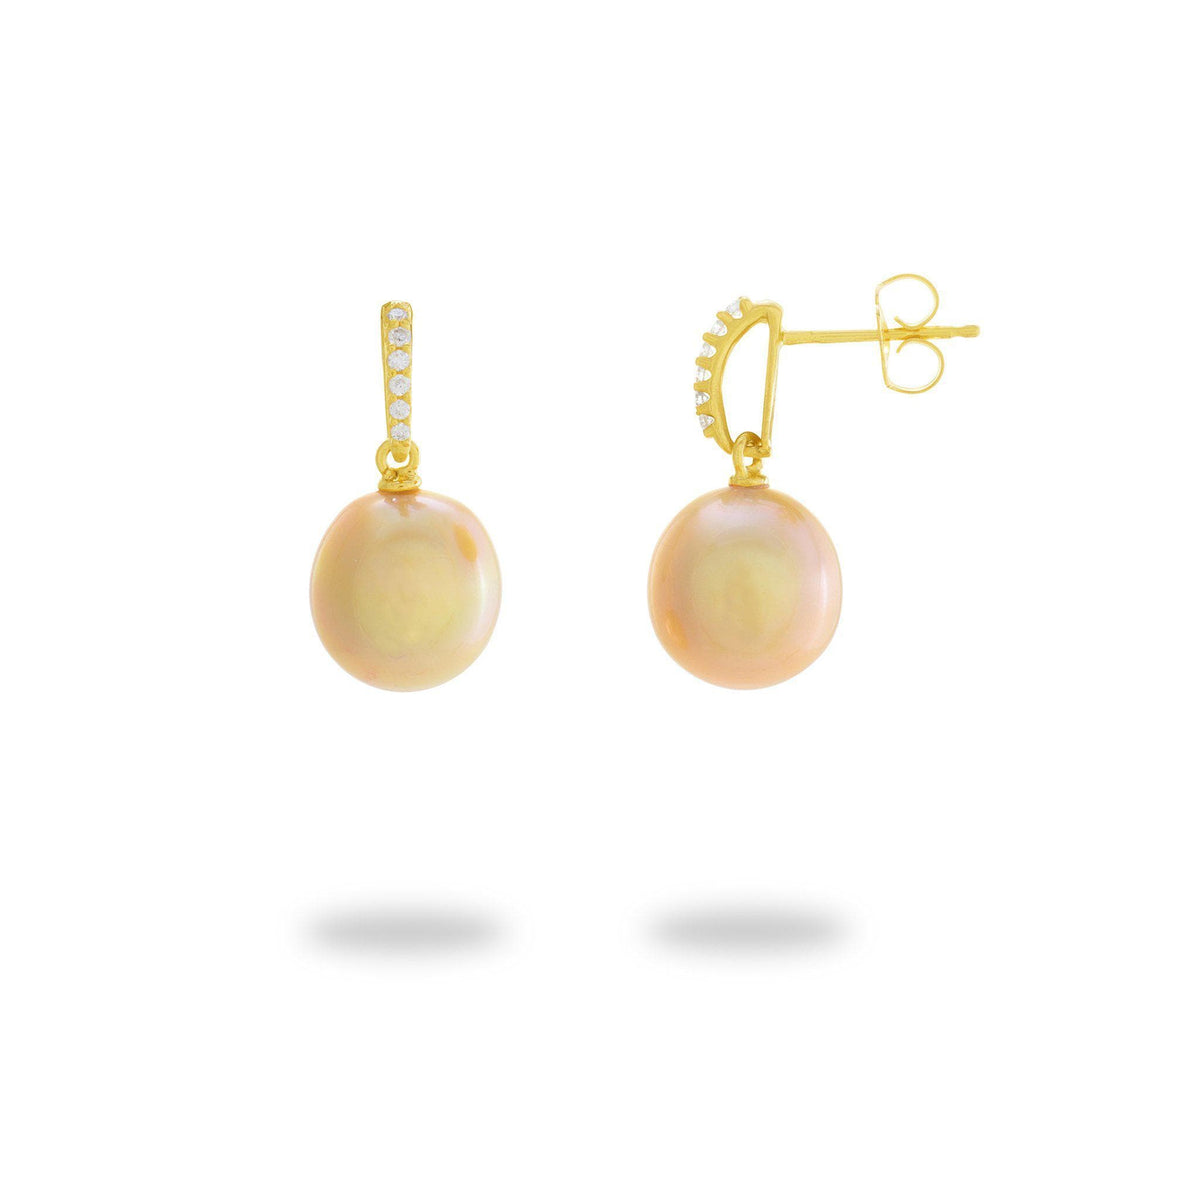 South Sea Golden Pearl Earrings with Diamonds in 14K Yellow Gold (10-11mm)